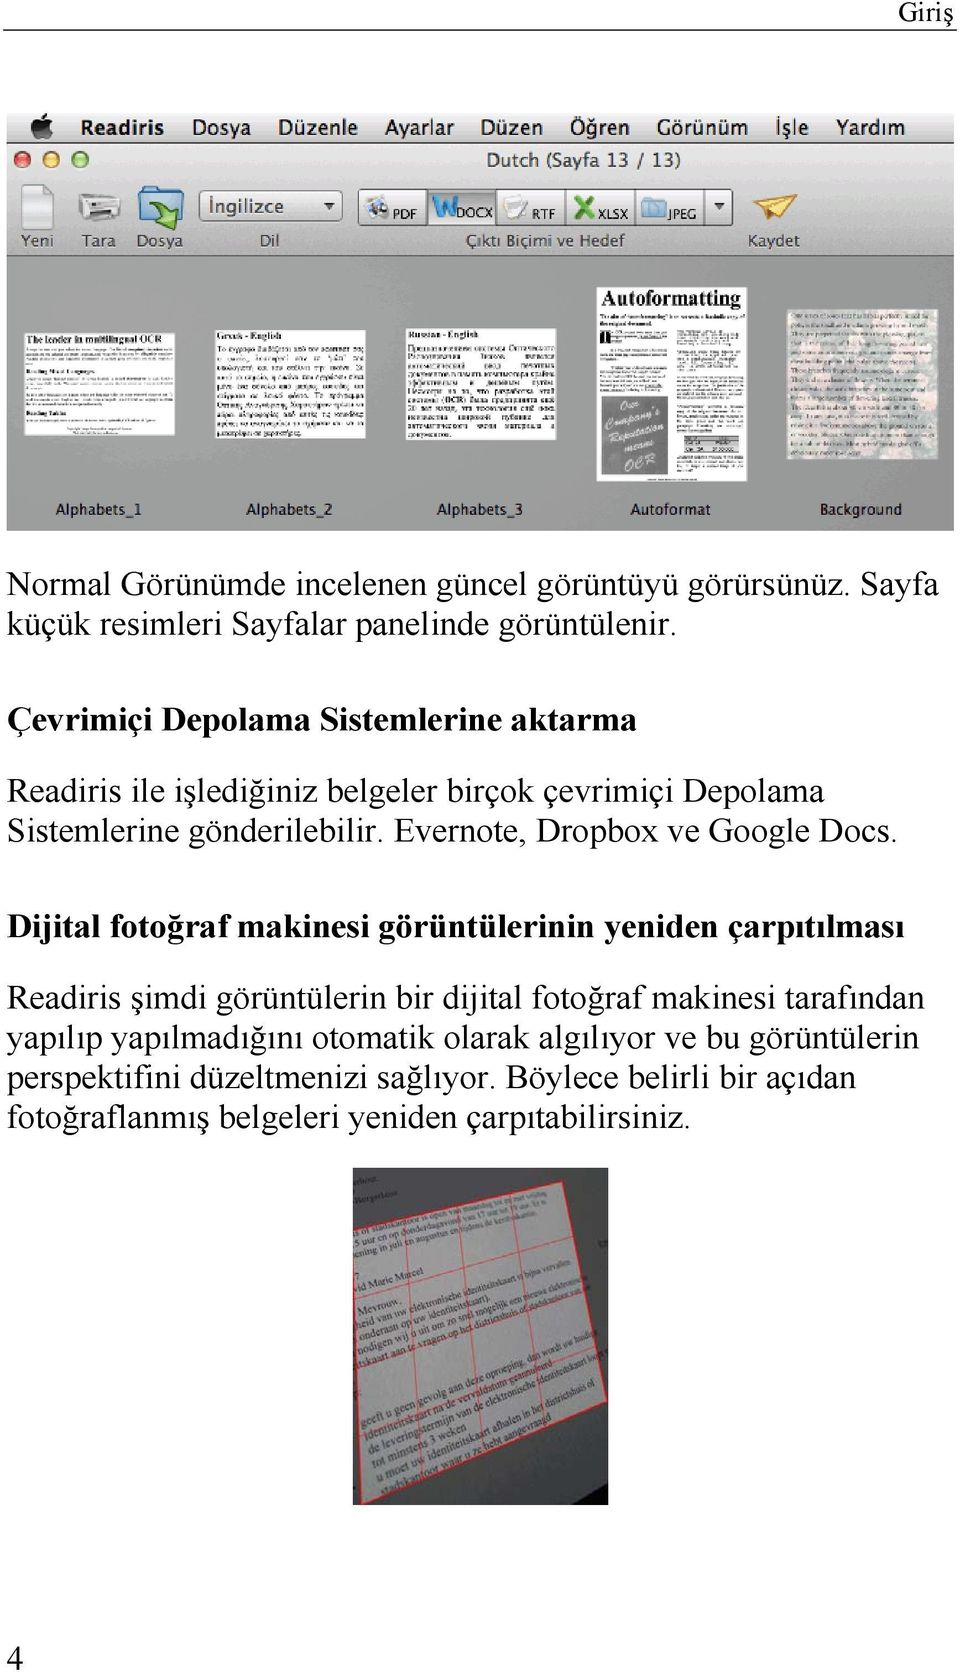 Evernote, Dropbox ve Google Docs.